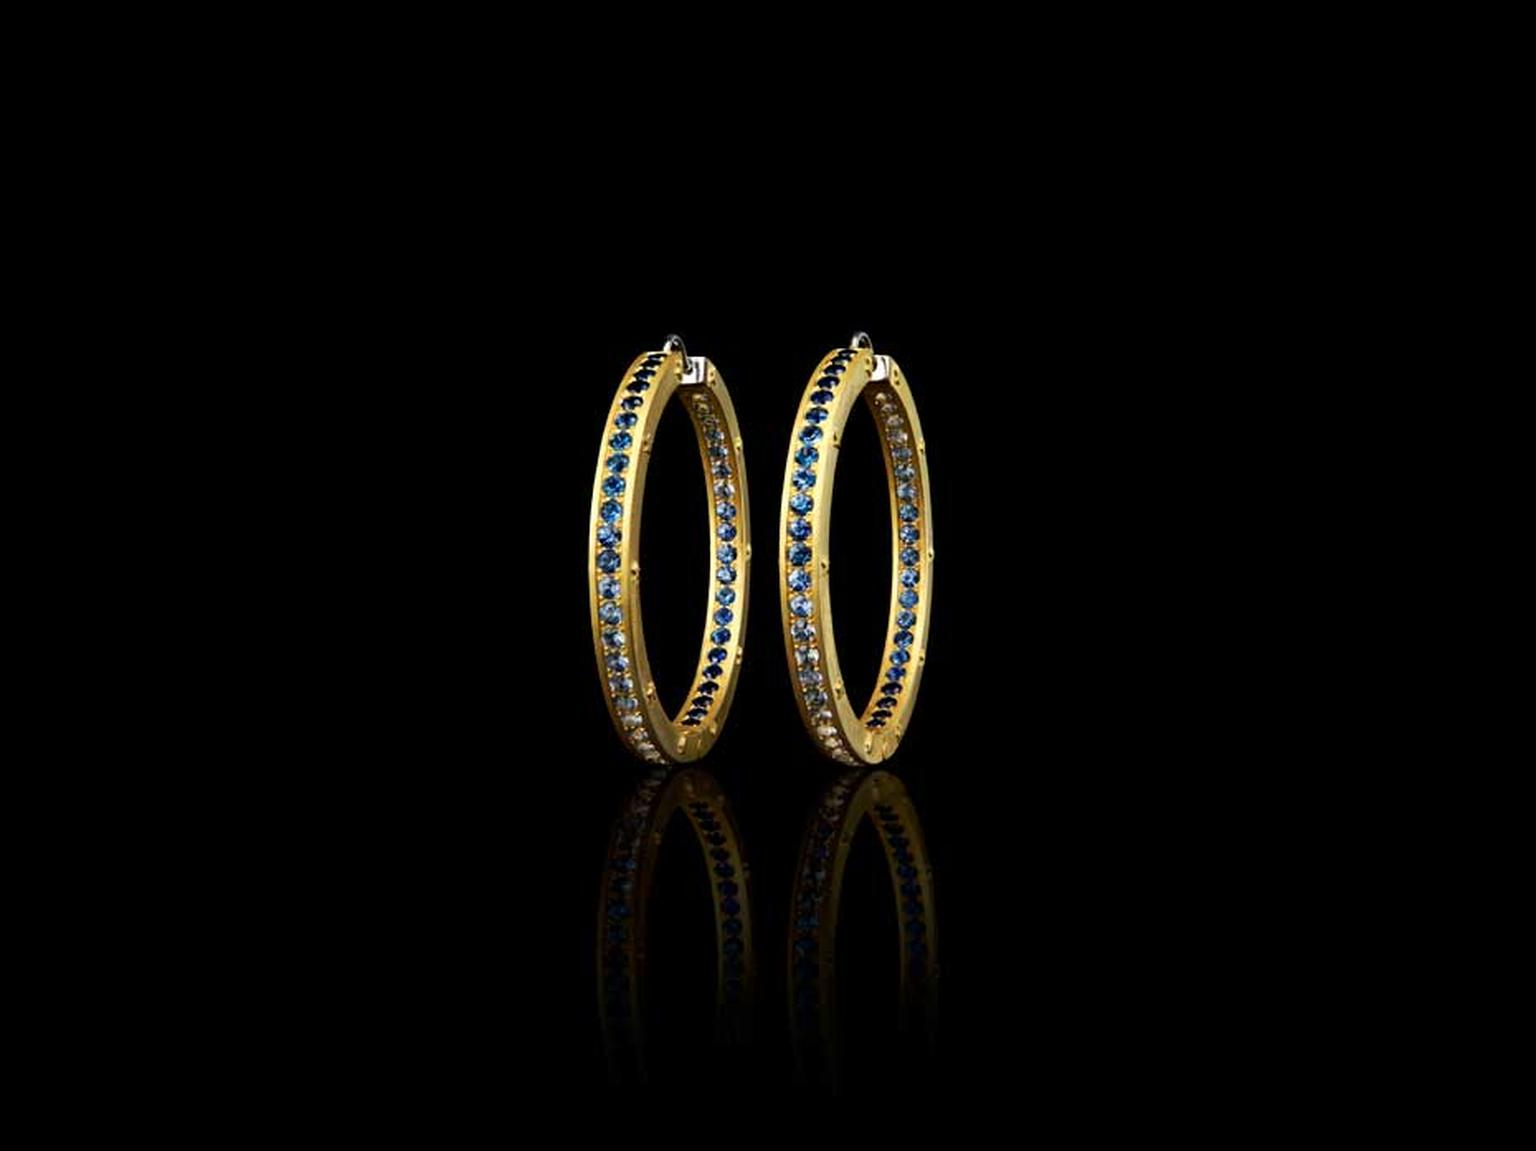 Liv Ballard Collection Orrecchini Cerchi Zaffiri hoop earrings in yellow gold, set with deep blue sapphires.